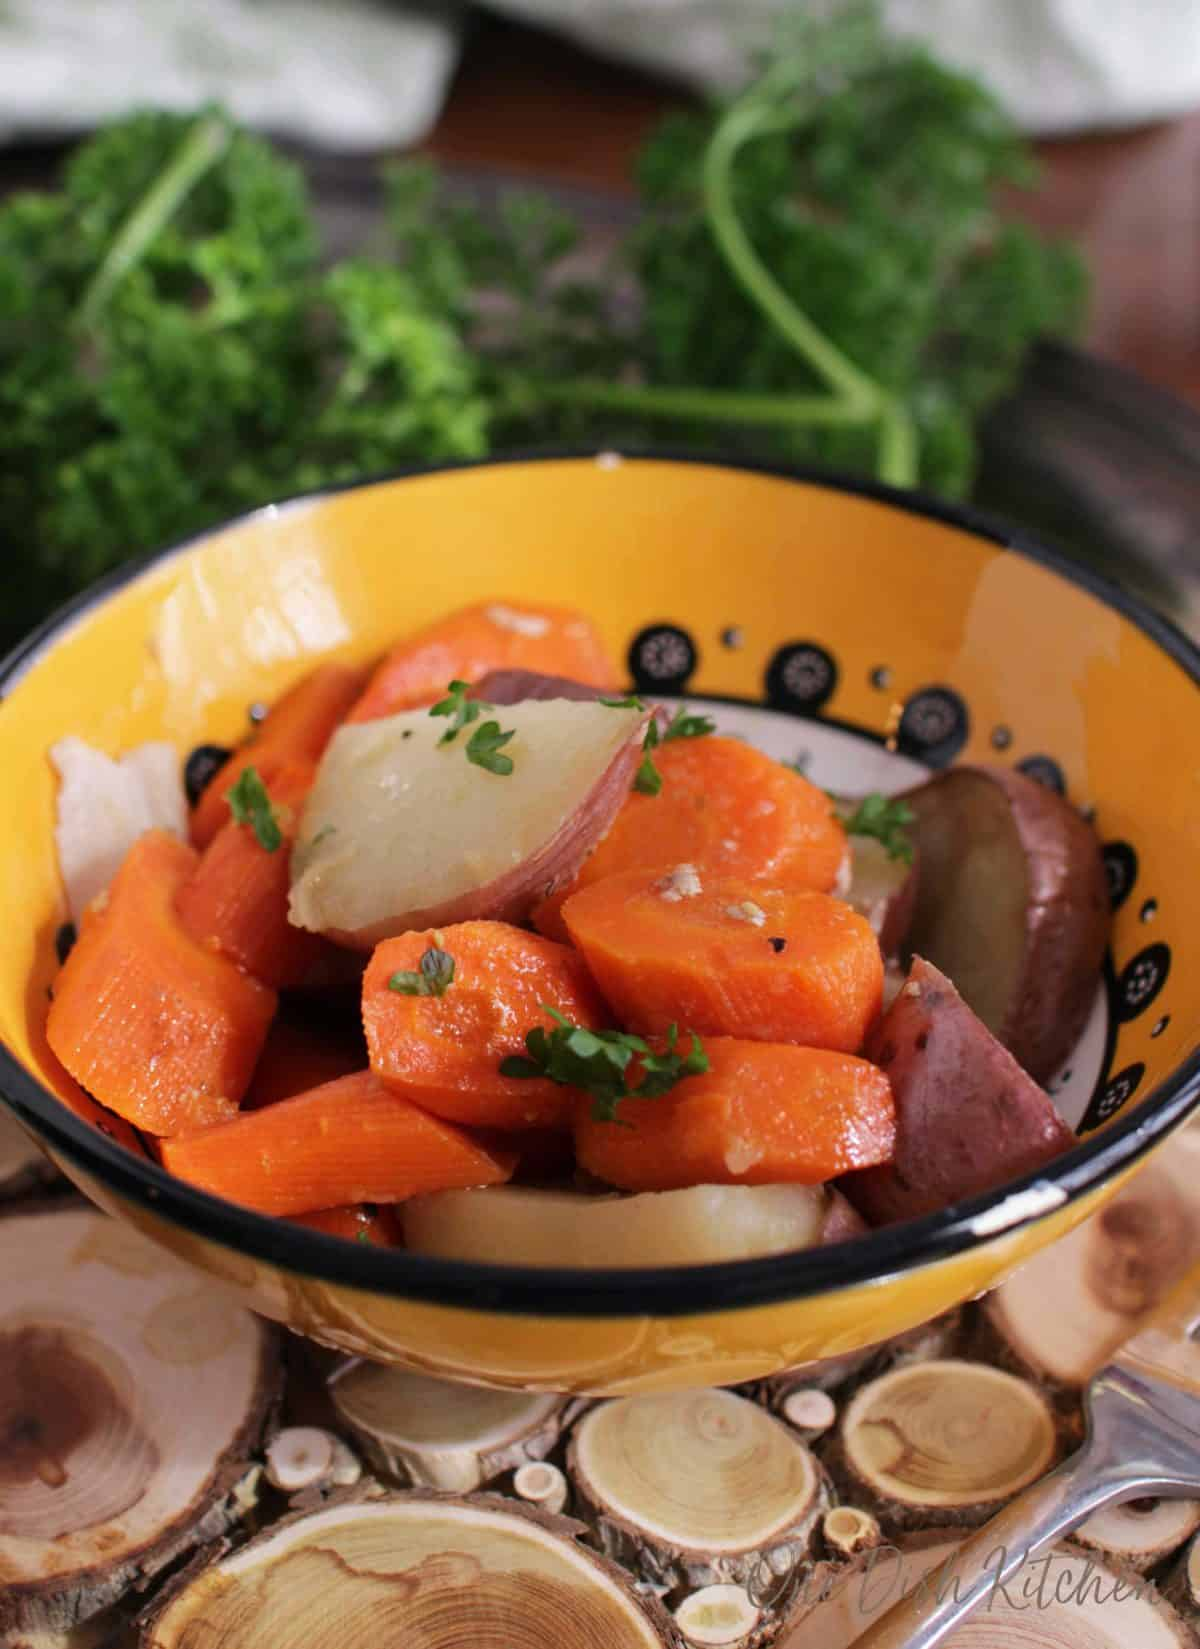 Roasted sliced red potatoes and carrots in a small bowl on a wooden trivet with a fork